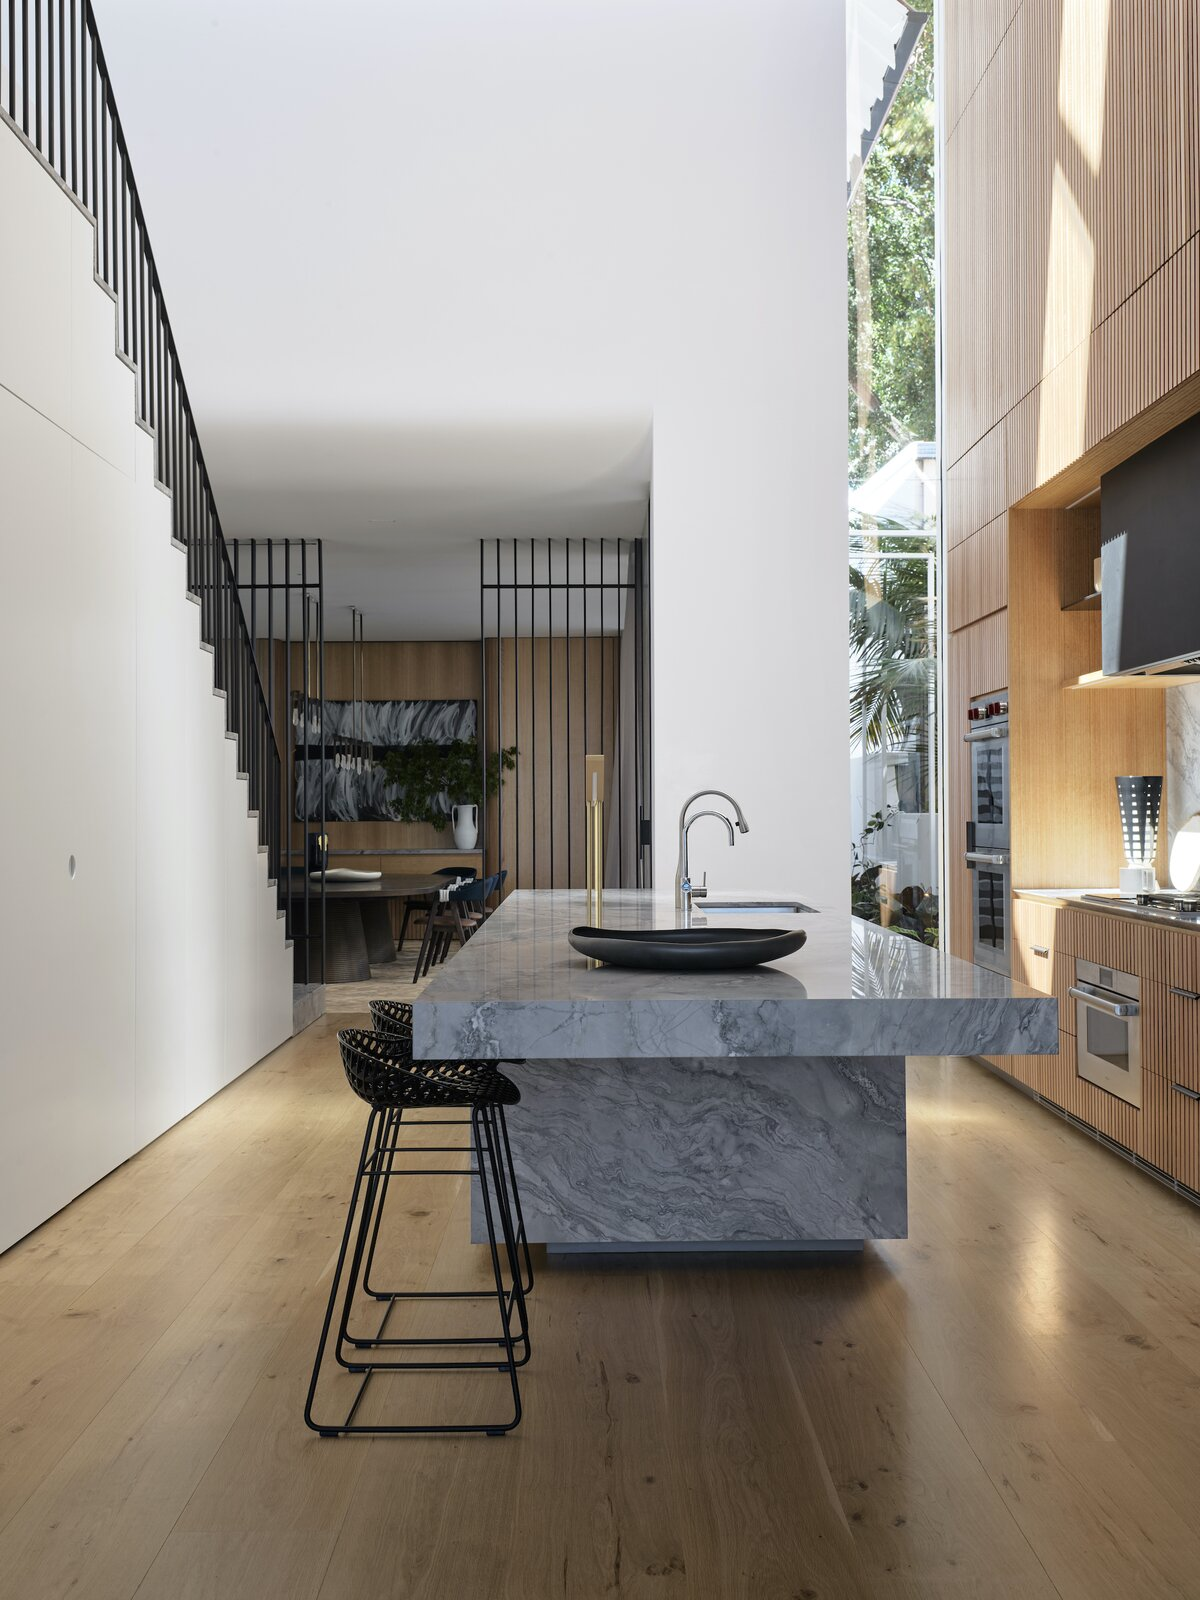 Kitchen of Bring to Light Terrace House by Stafford Architecture.